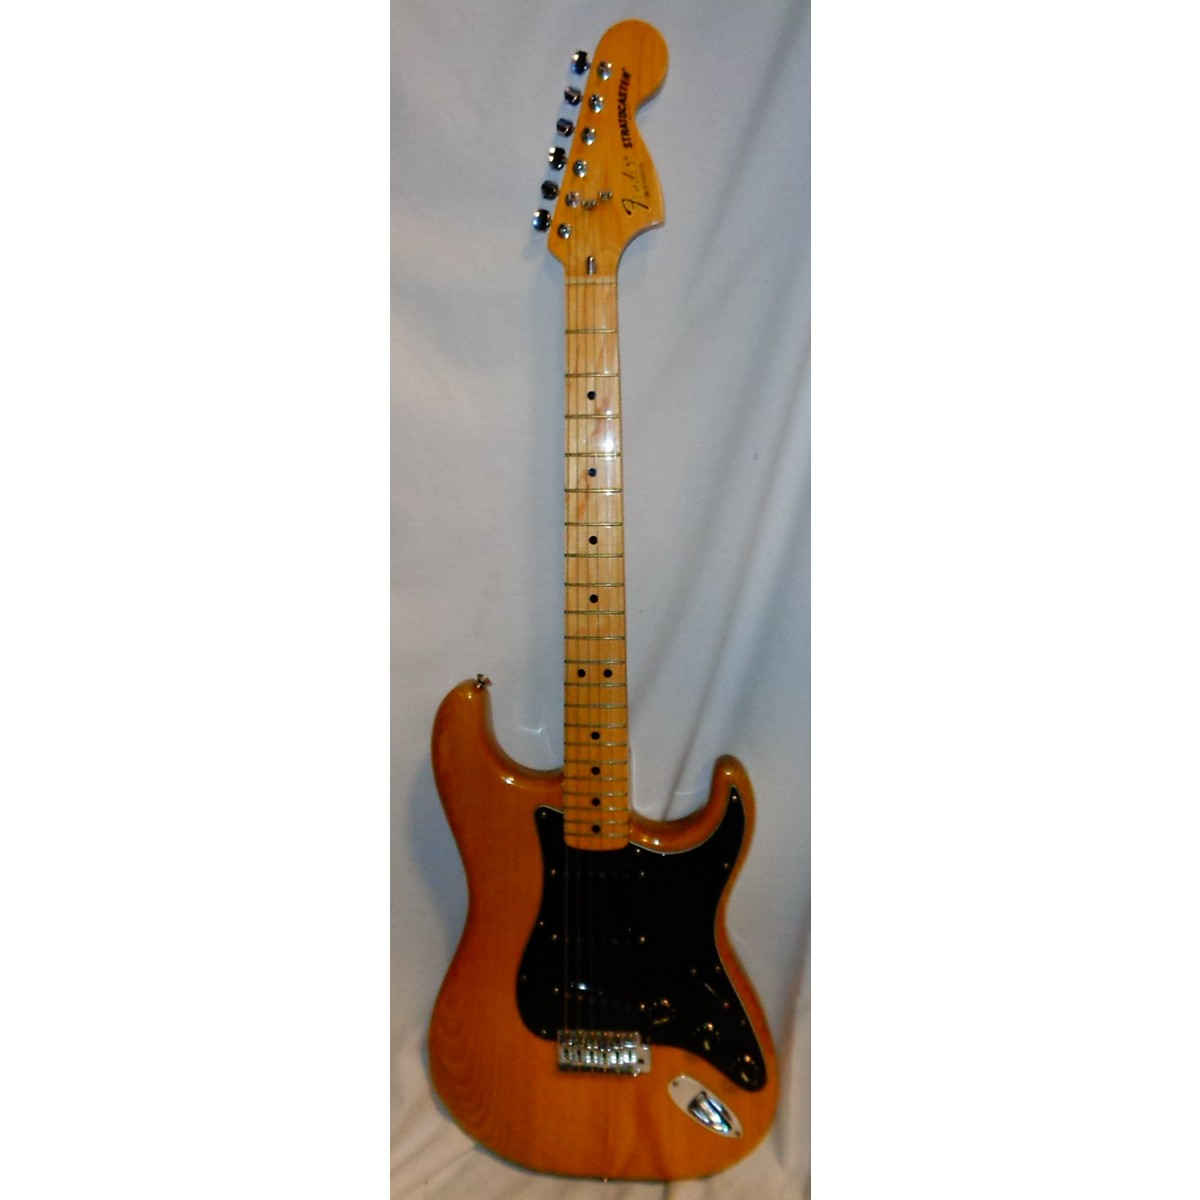 Fender 1979 1979 Stratocaster Solid Body Electric Guitar